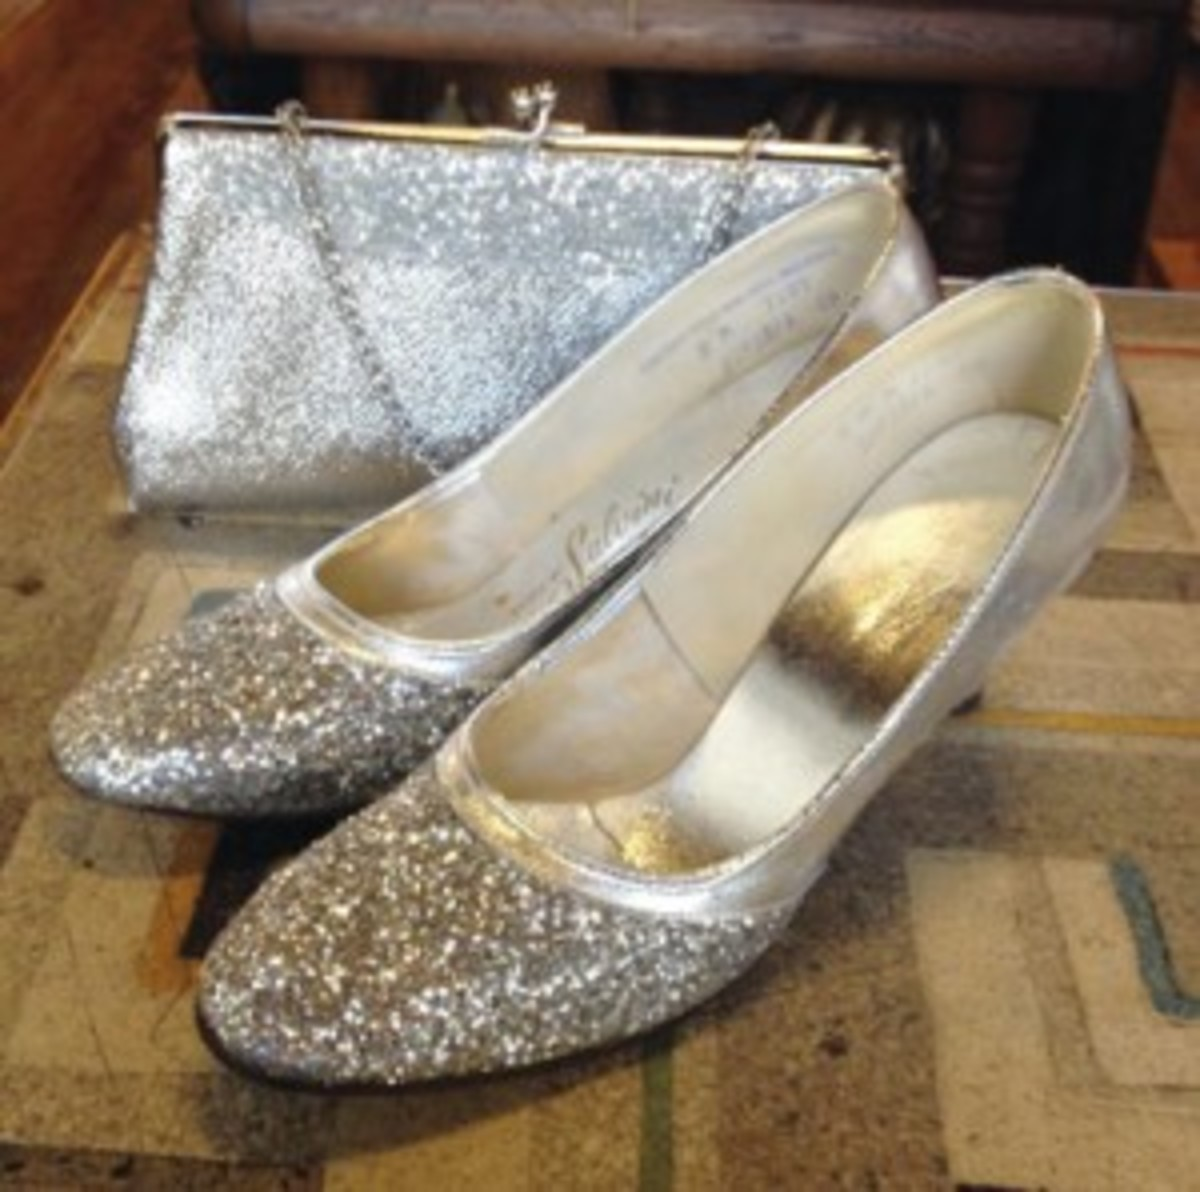 Second Chance Antiques shoes and handbags